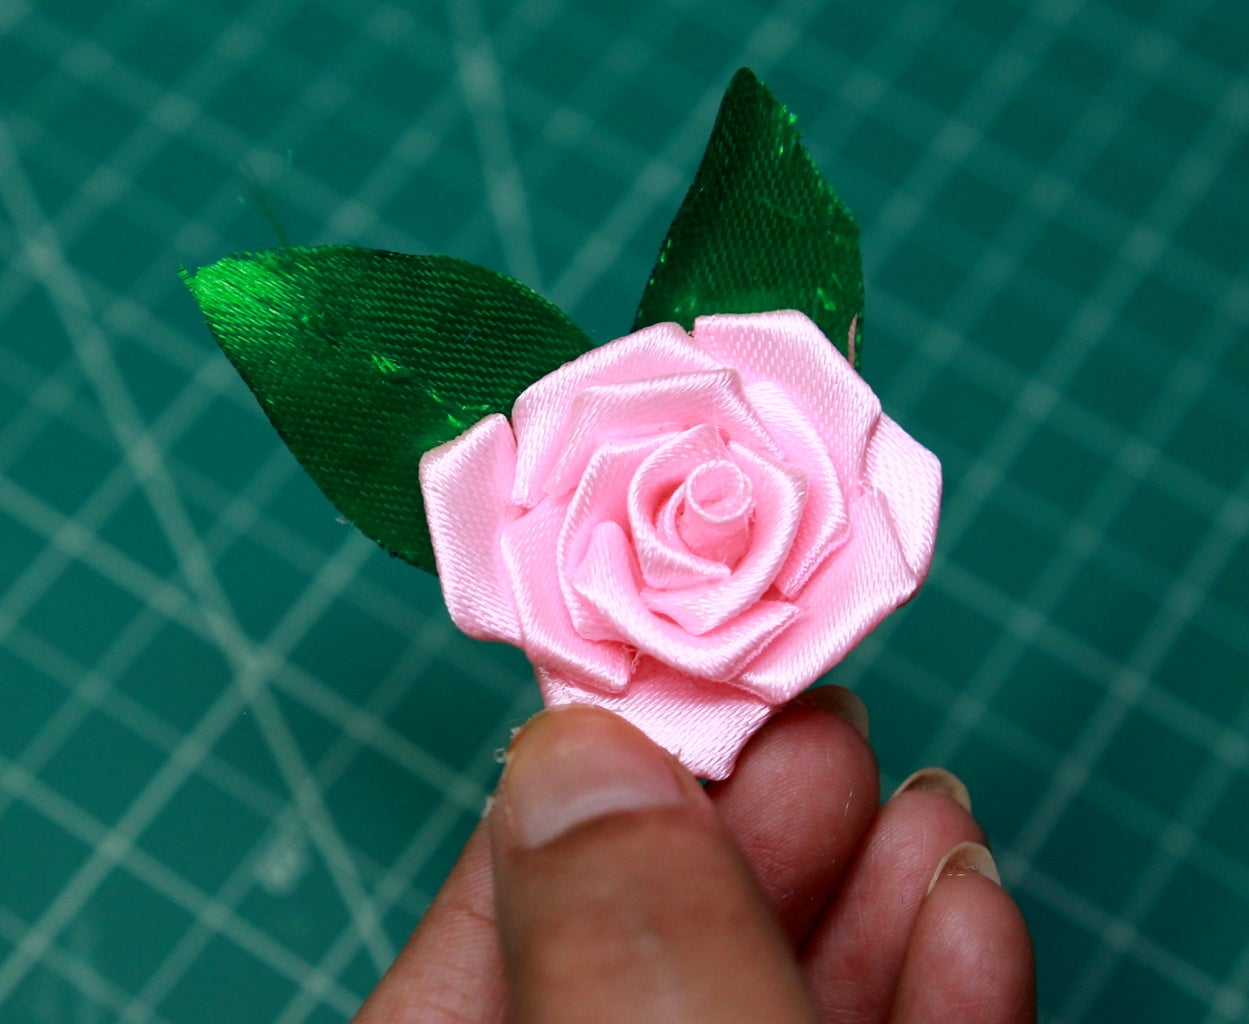 Gluing Leaves With the Roses